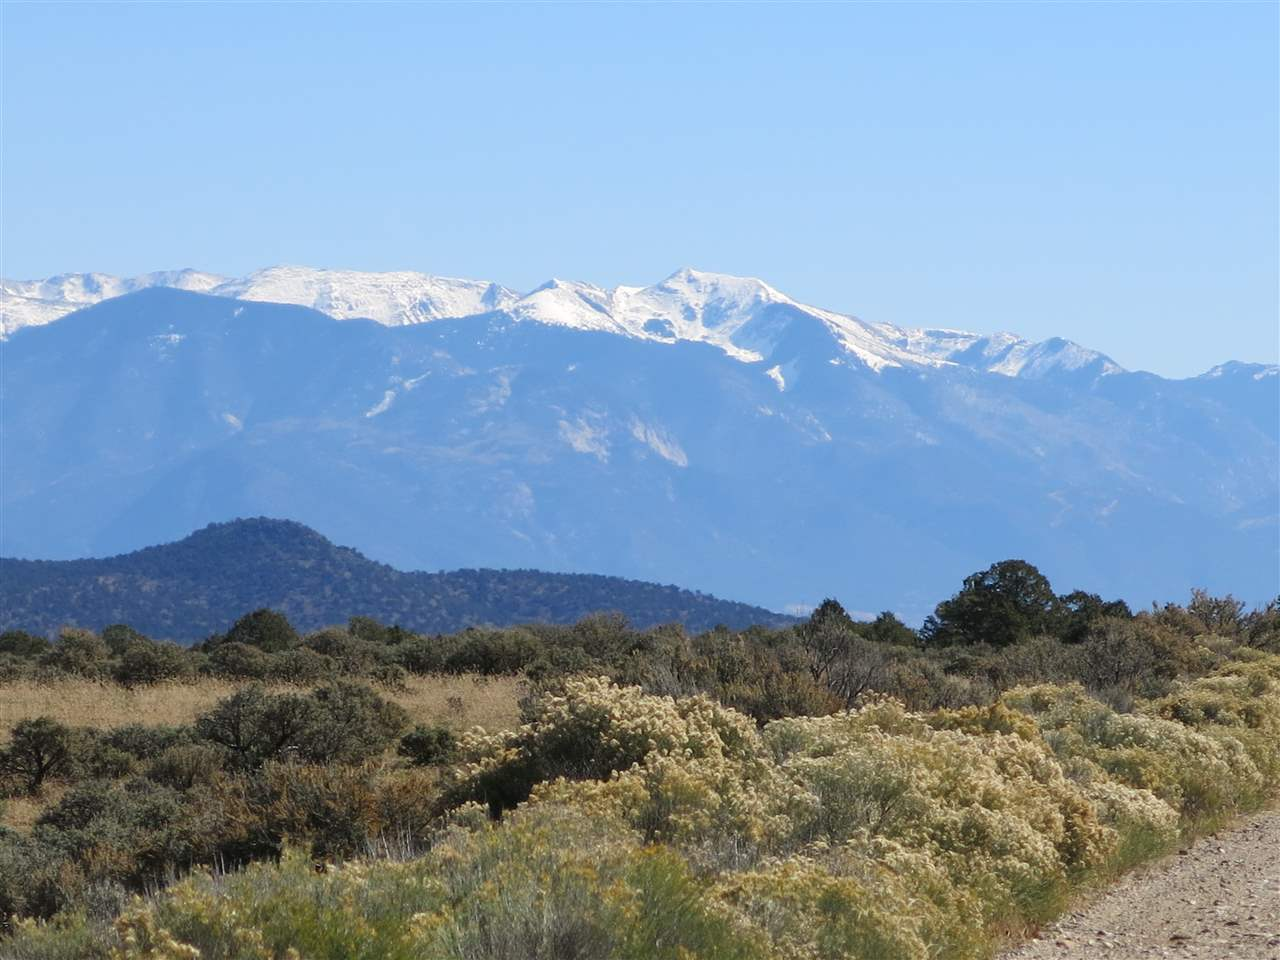 Lot 15 off Chile land rd, Tres Piedras, NM 87529